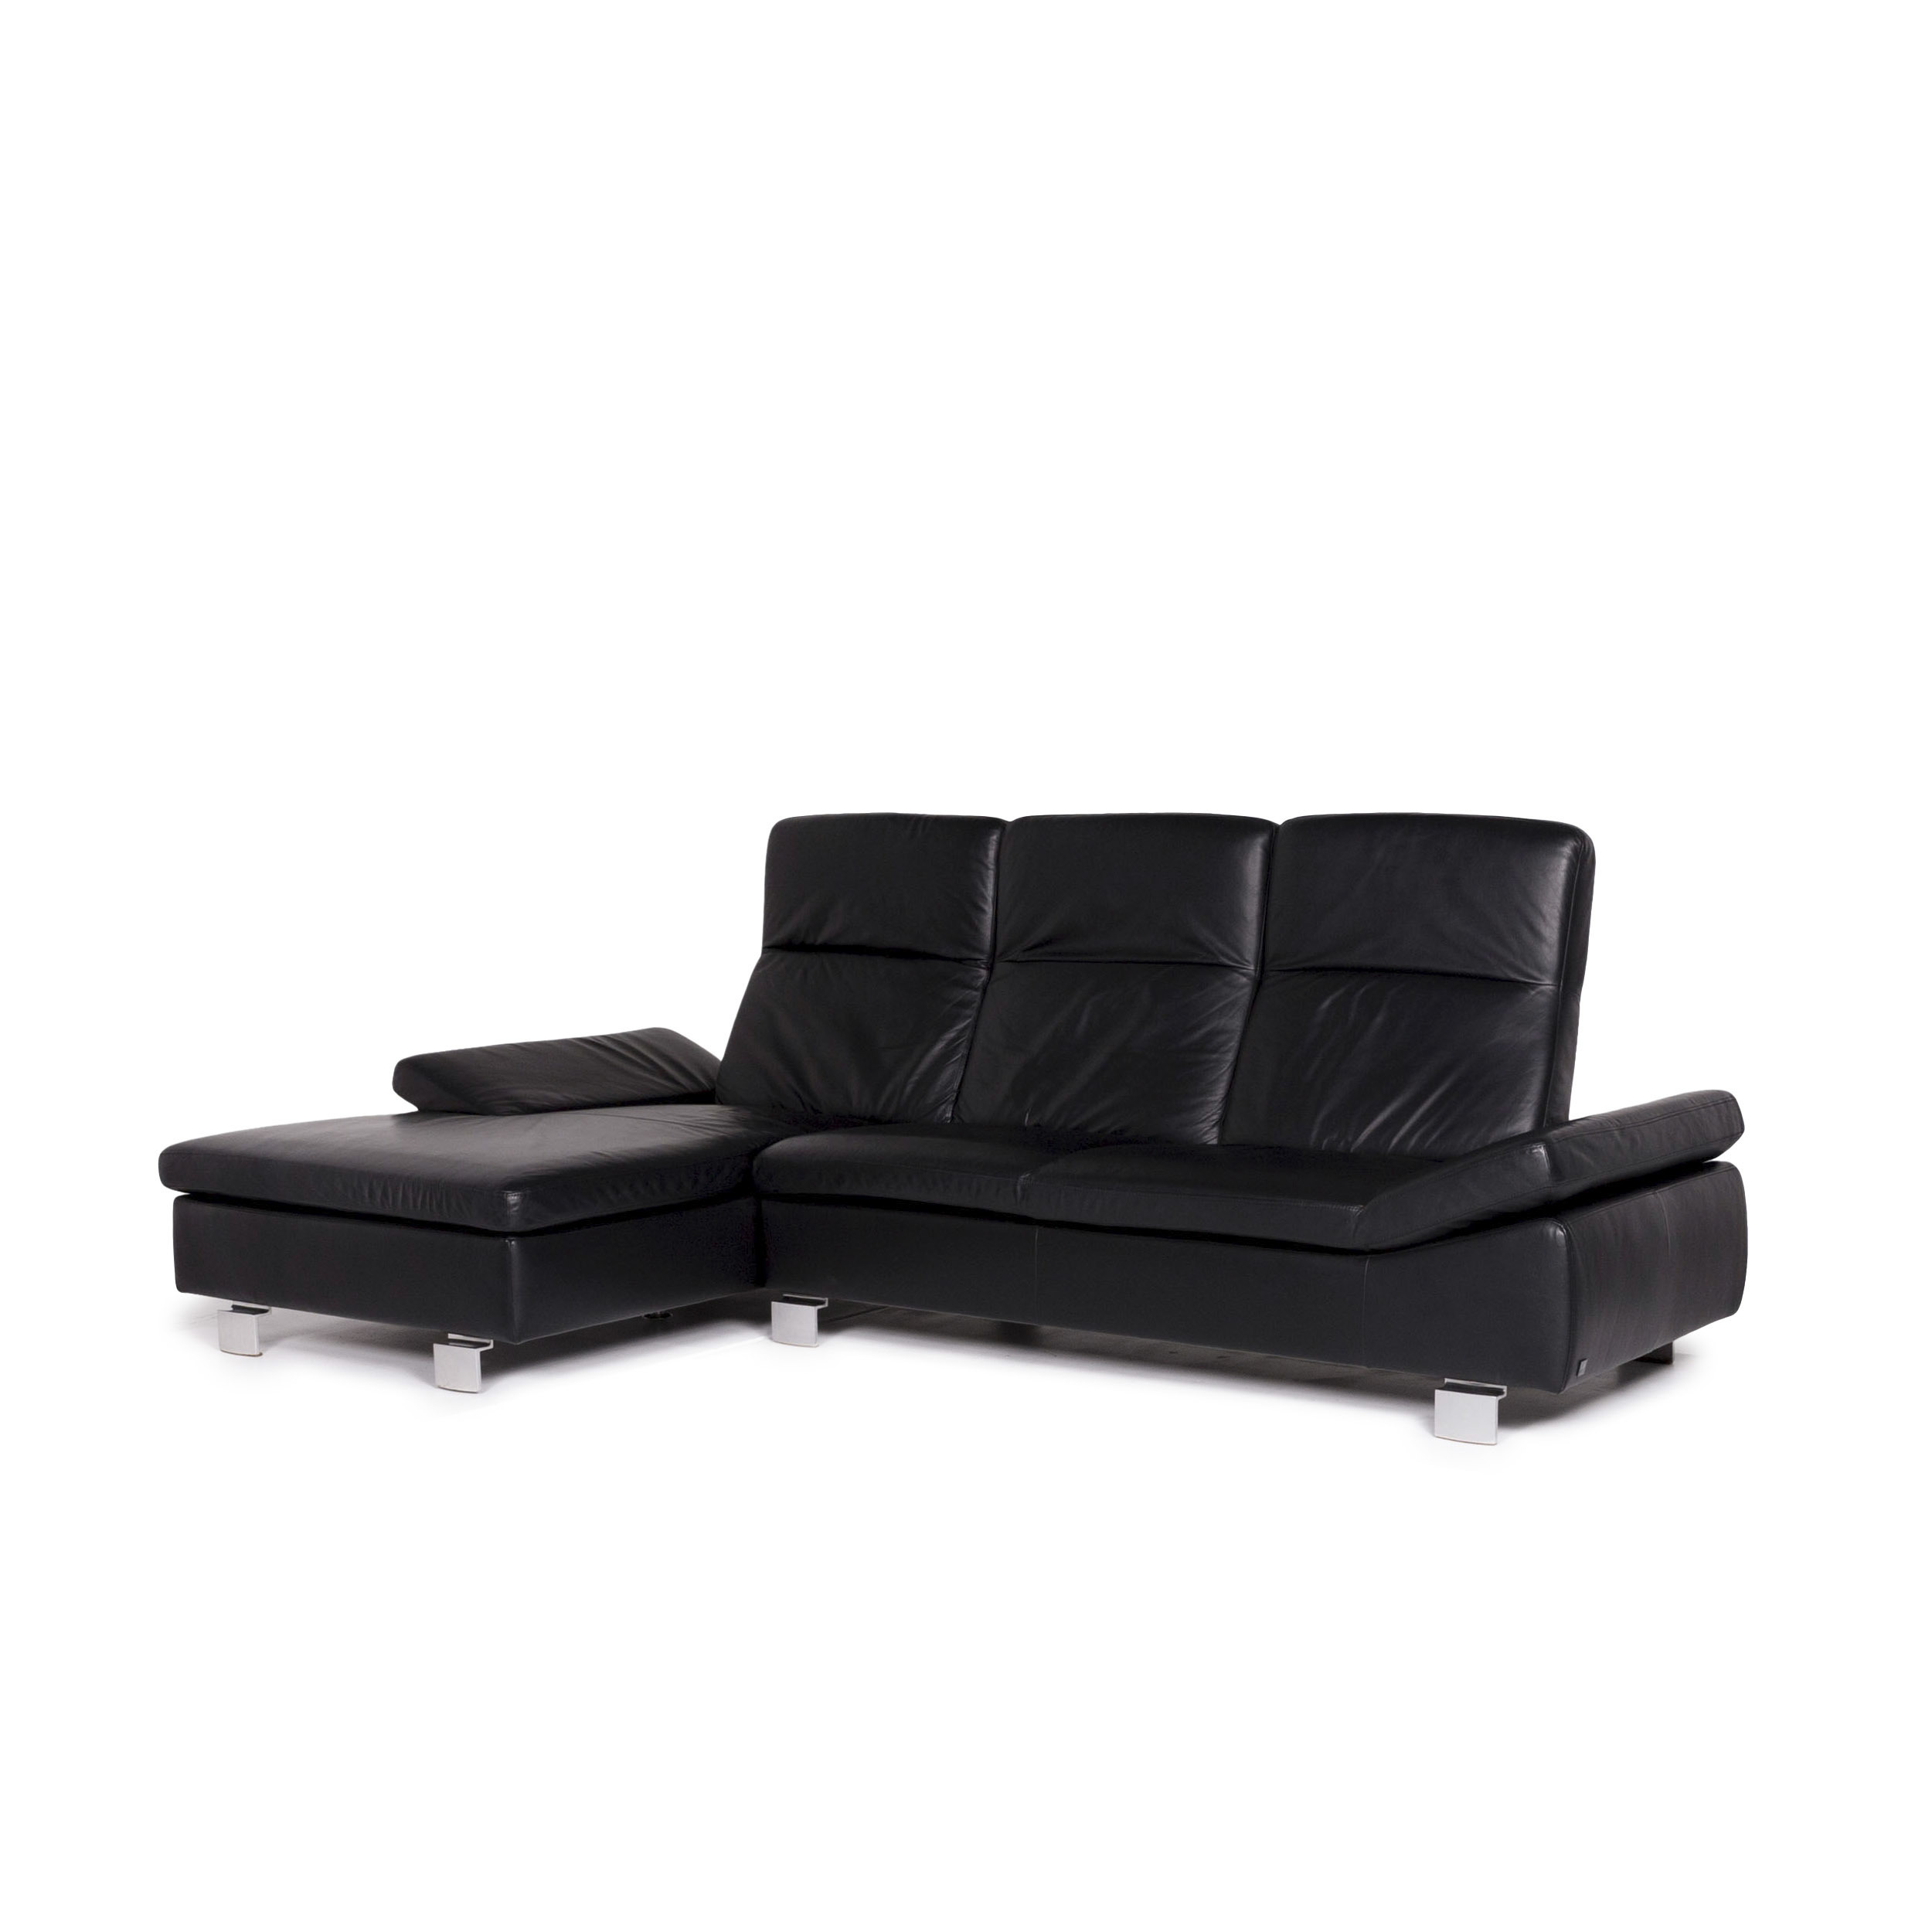 Willi Schillig For You Leather Corner Sofa Black Sofa Function Couch #11198